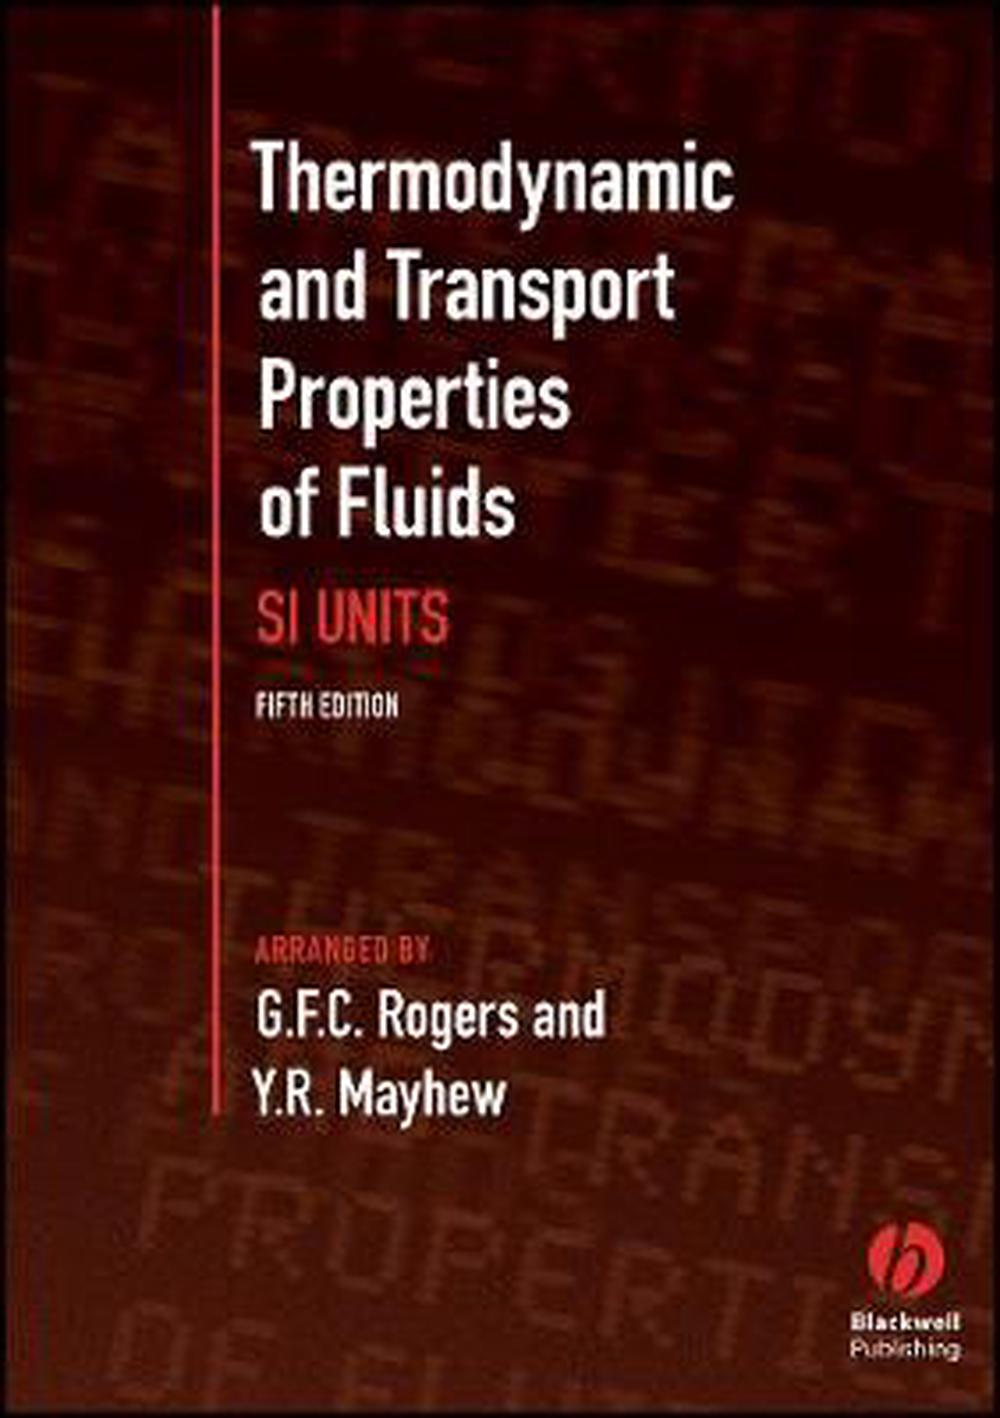 Thermodynamic and Transport Properties of Fluids, 5th Edition